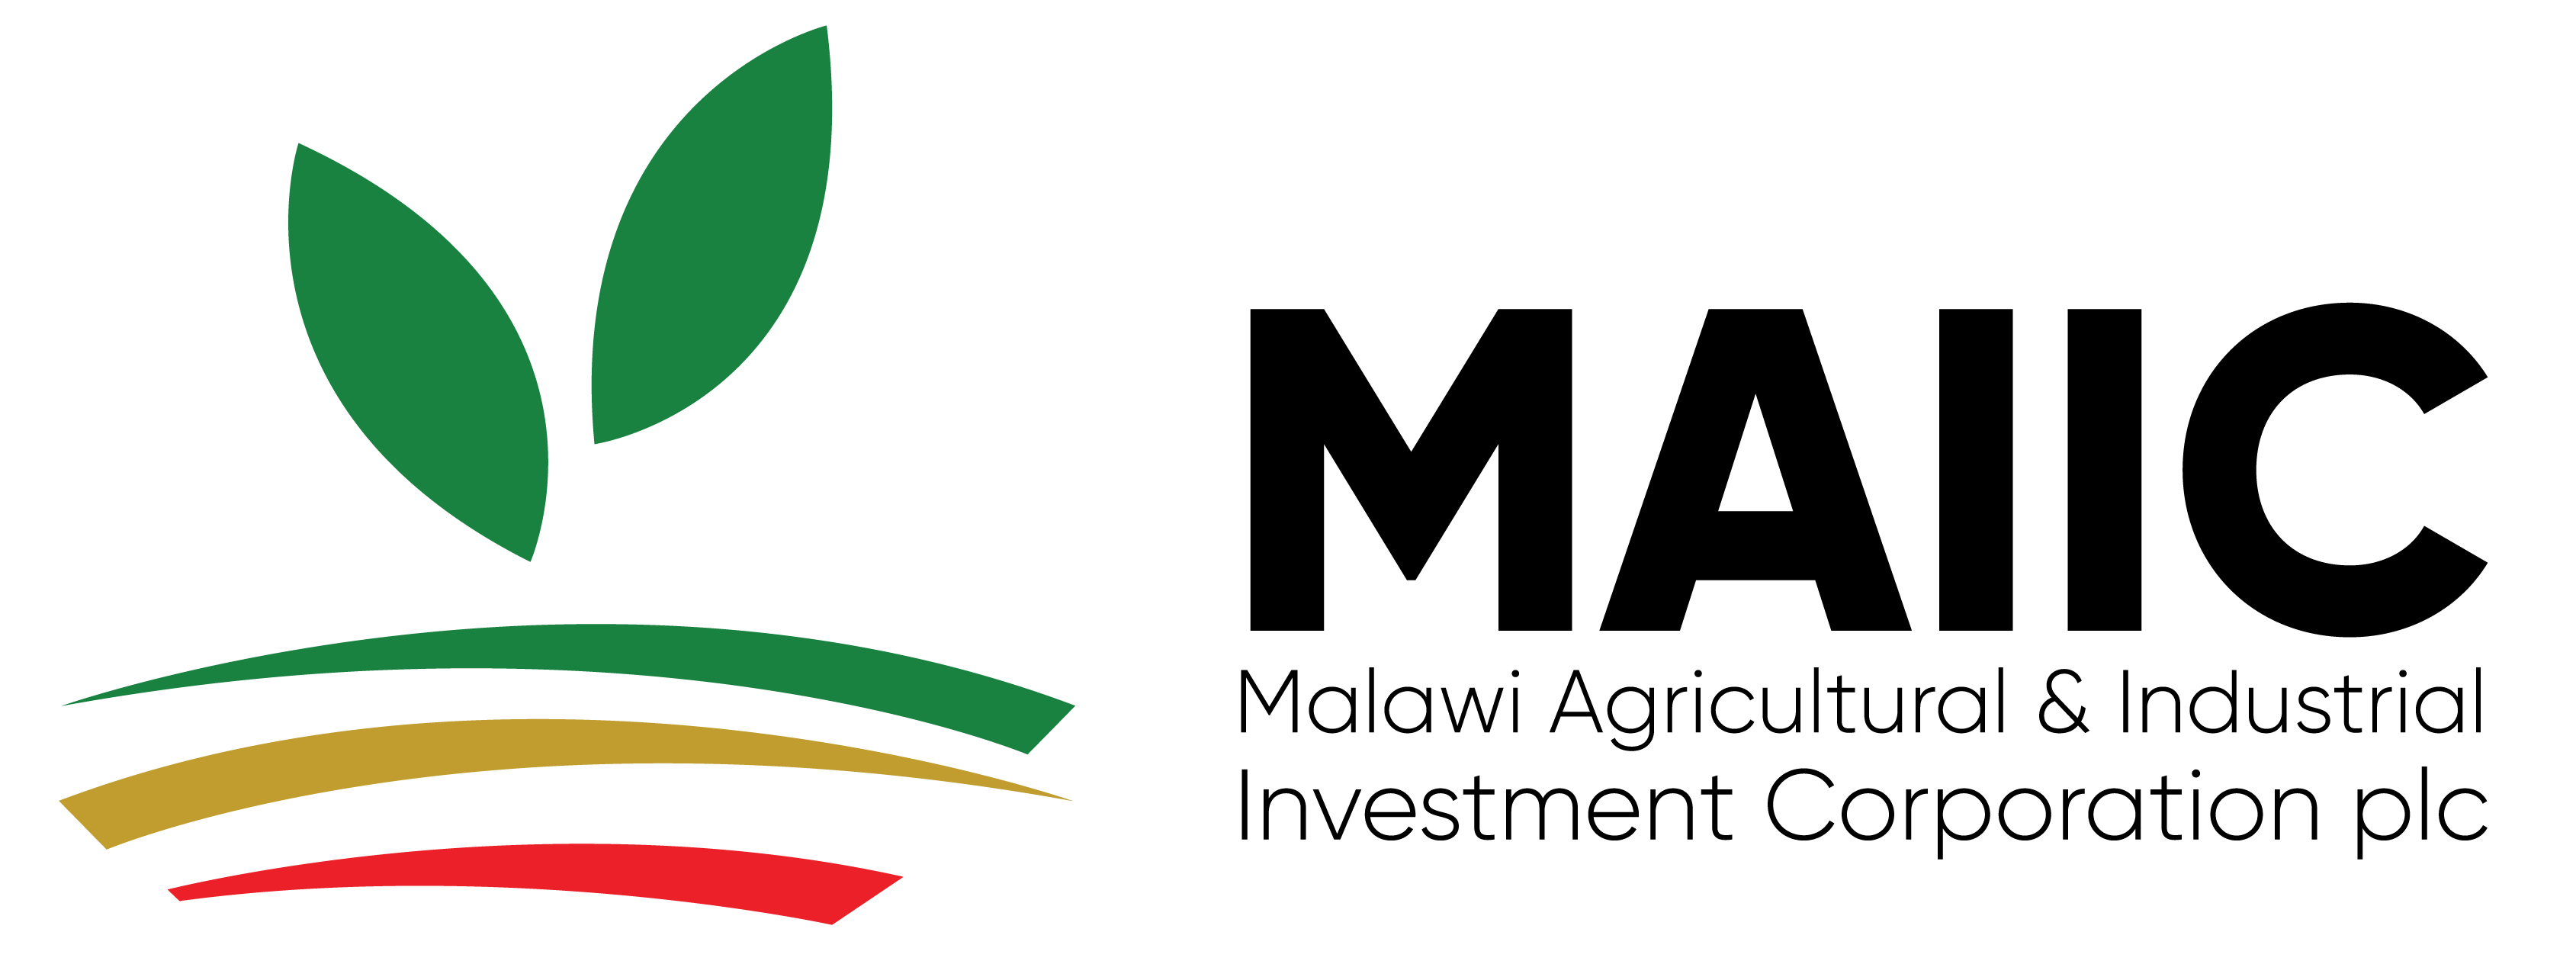 Malawi Industrial & Agricultural Investment Corporation plc